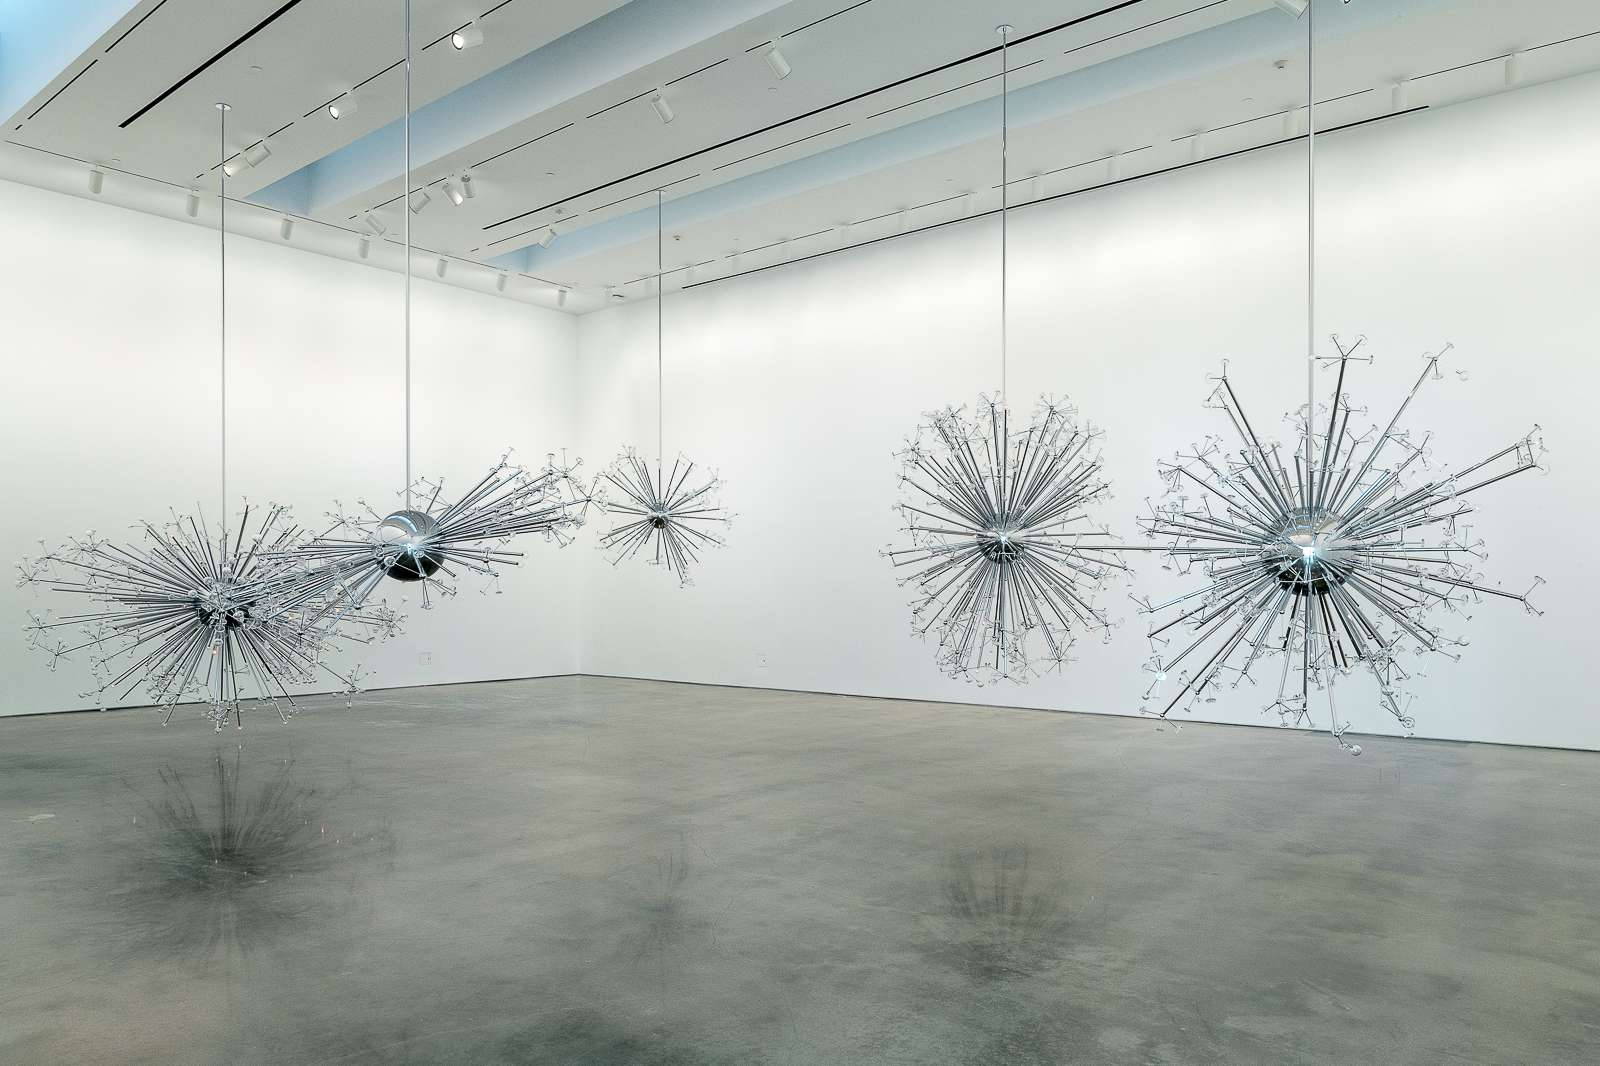 Installation view of Island Universe by Josiah McElheny, 2008. Chrome plated aluminum, handblown and molded glass, electric lighting, and rigging. Dimensions variable. Courtesy the artist. Photo: Nash Baker